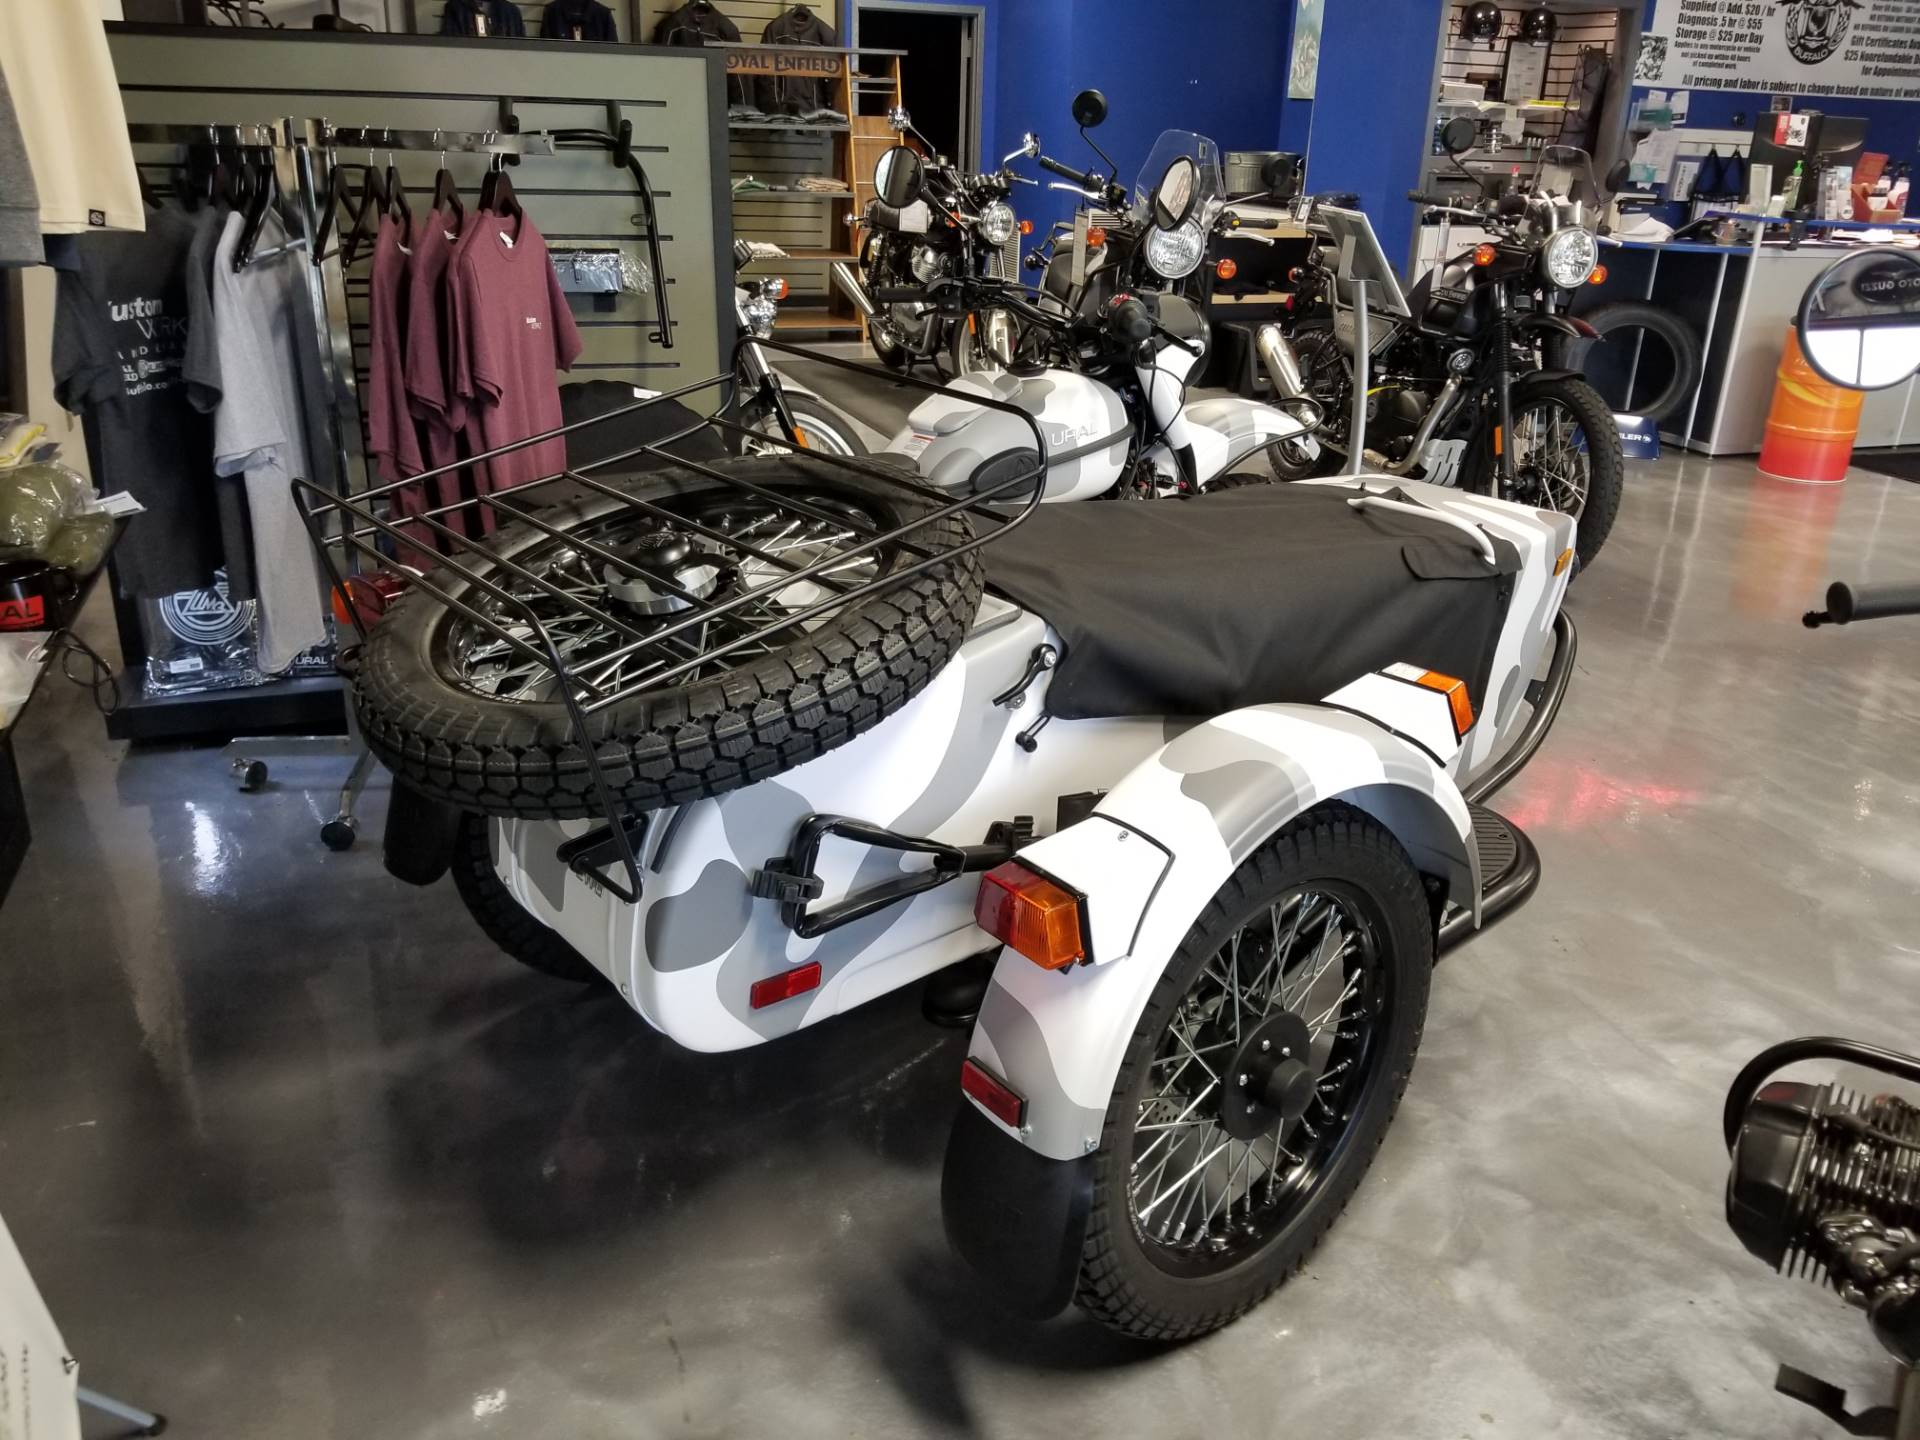 2019 Ural Motorcycles Gear Up in Depew, New York - Photo 3